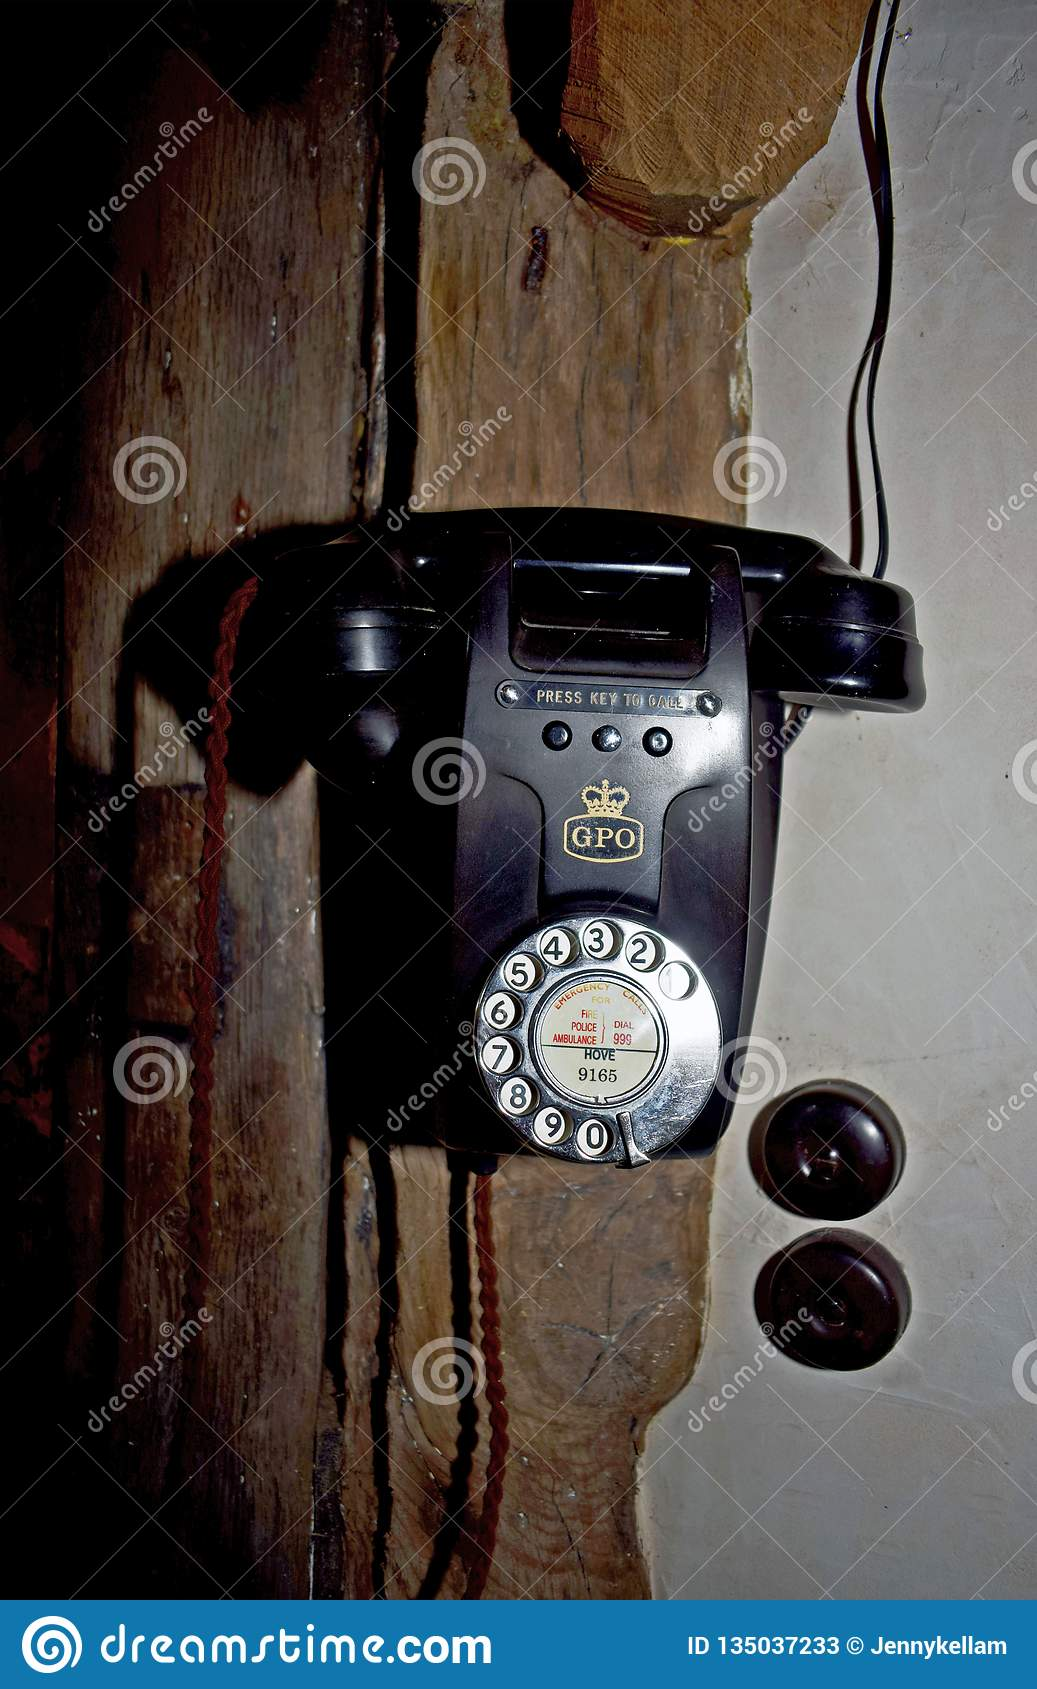 A old fashioned telephone